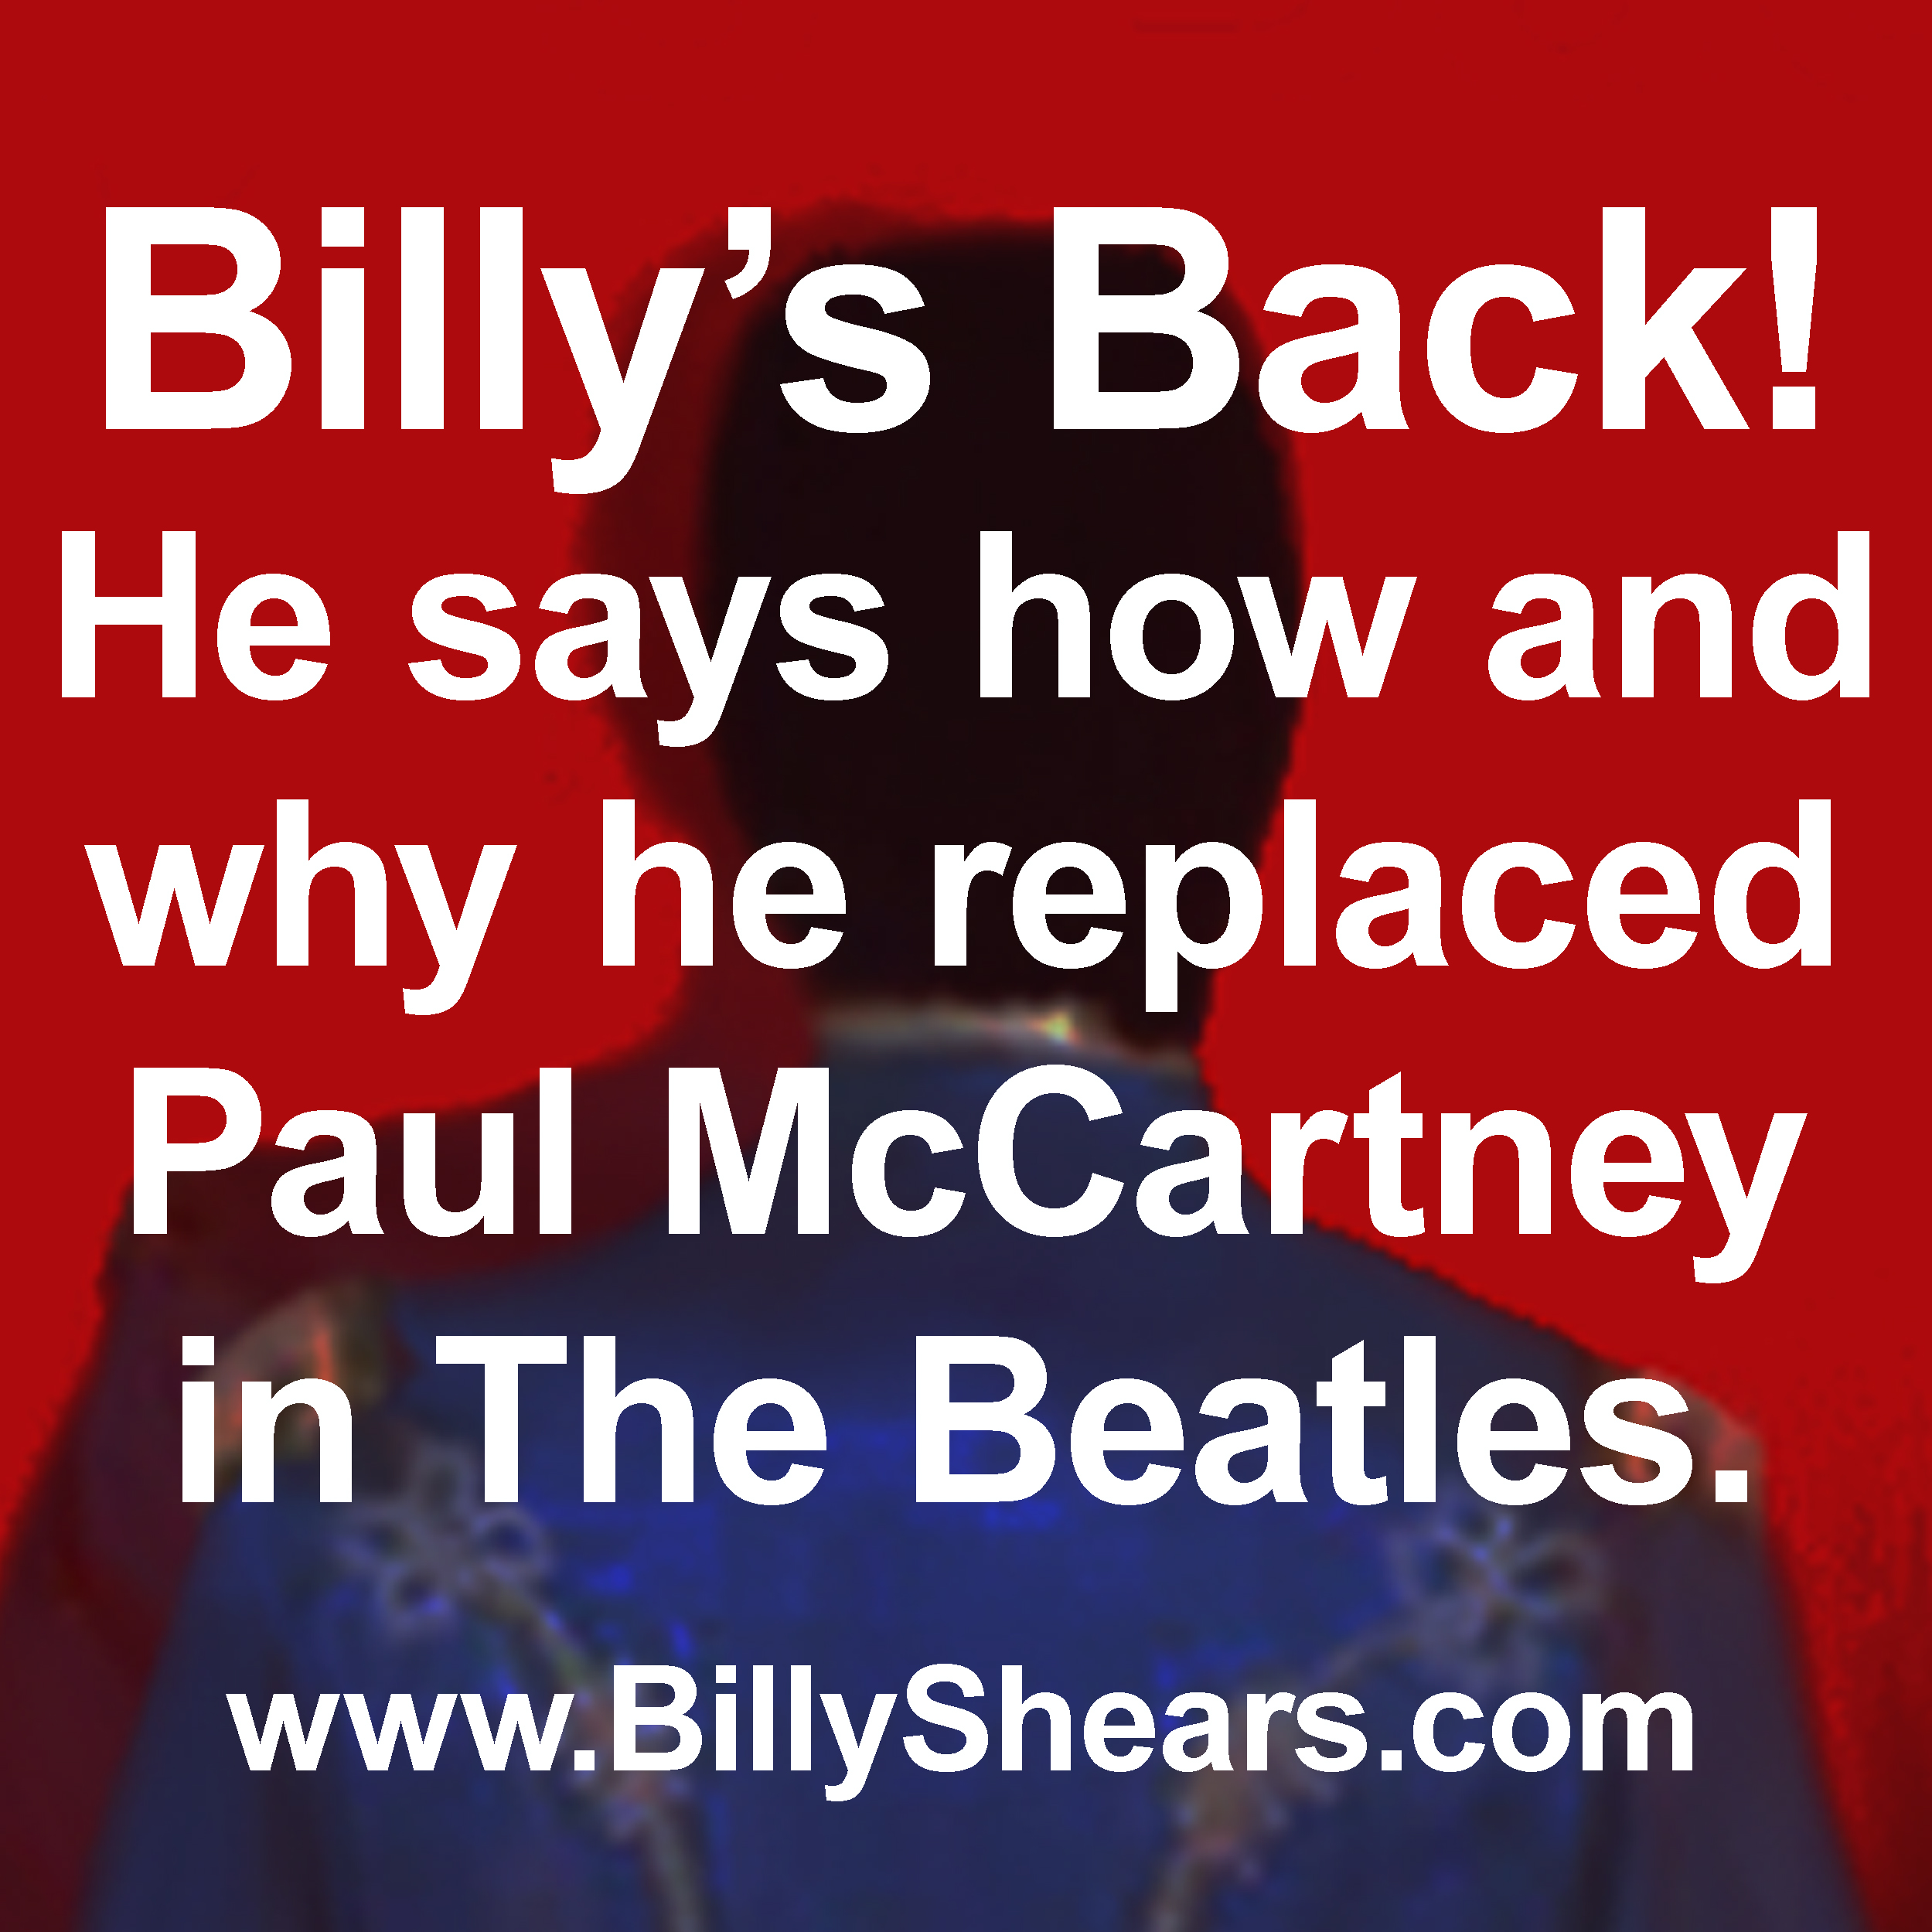 Billy's Back!  He says how and why he replaced Paul McCartney in The Beatles.